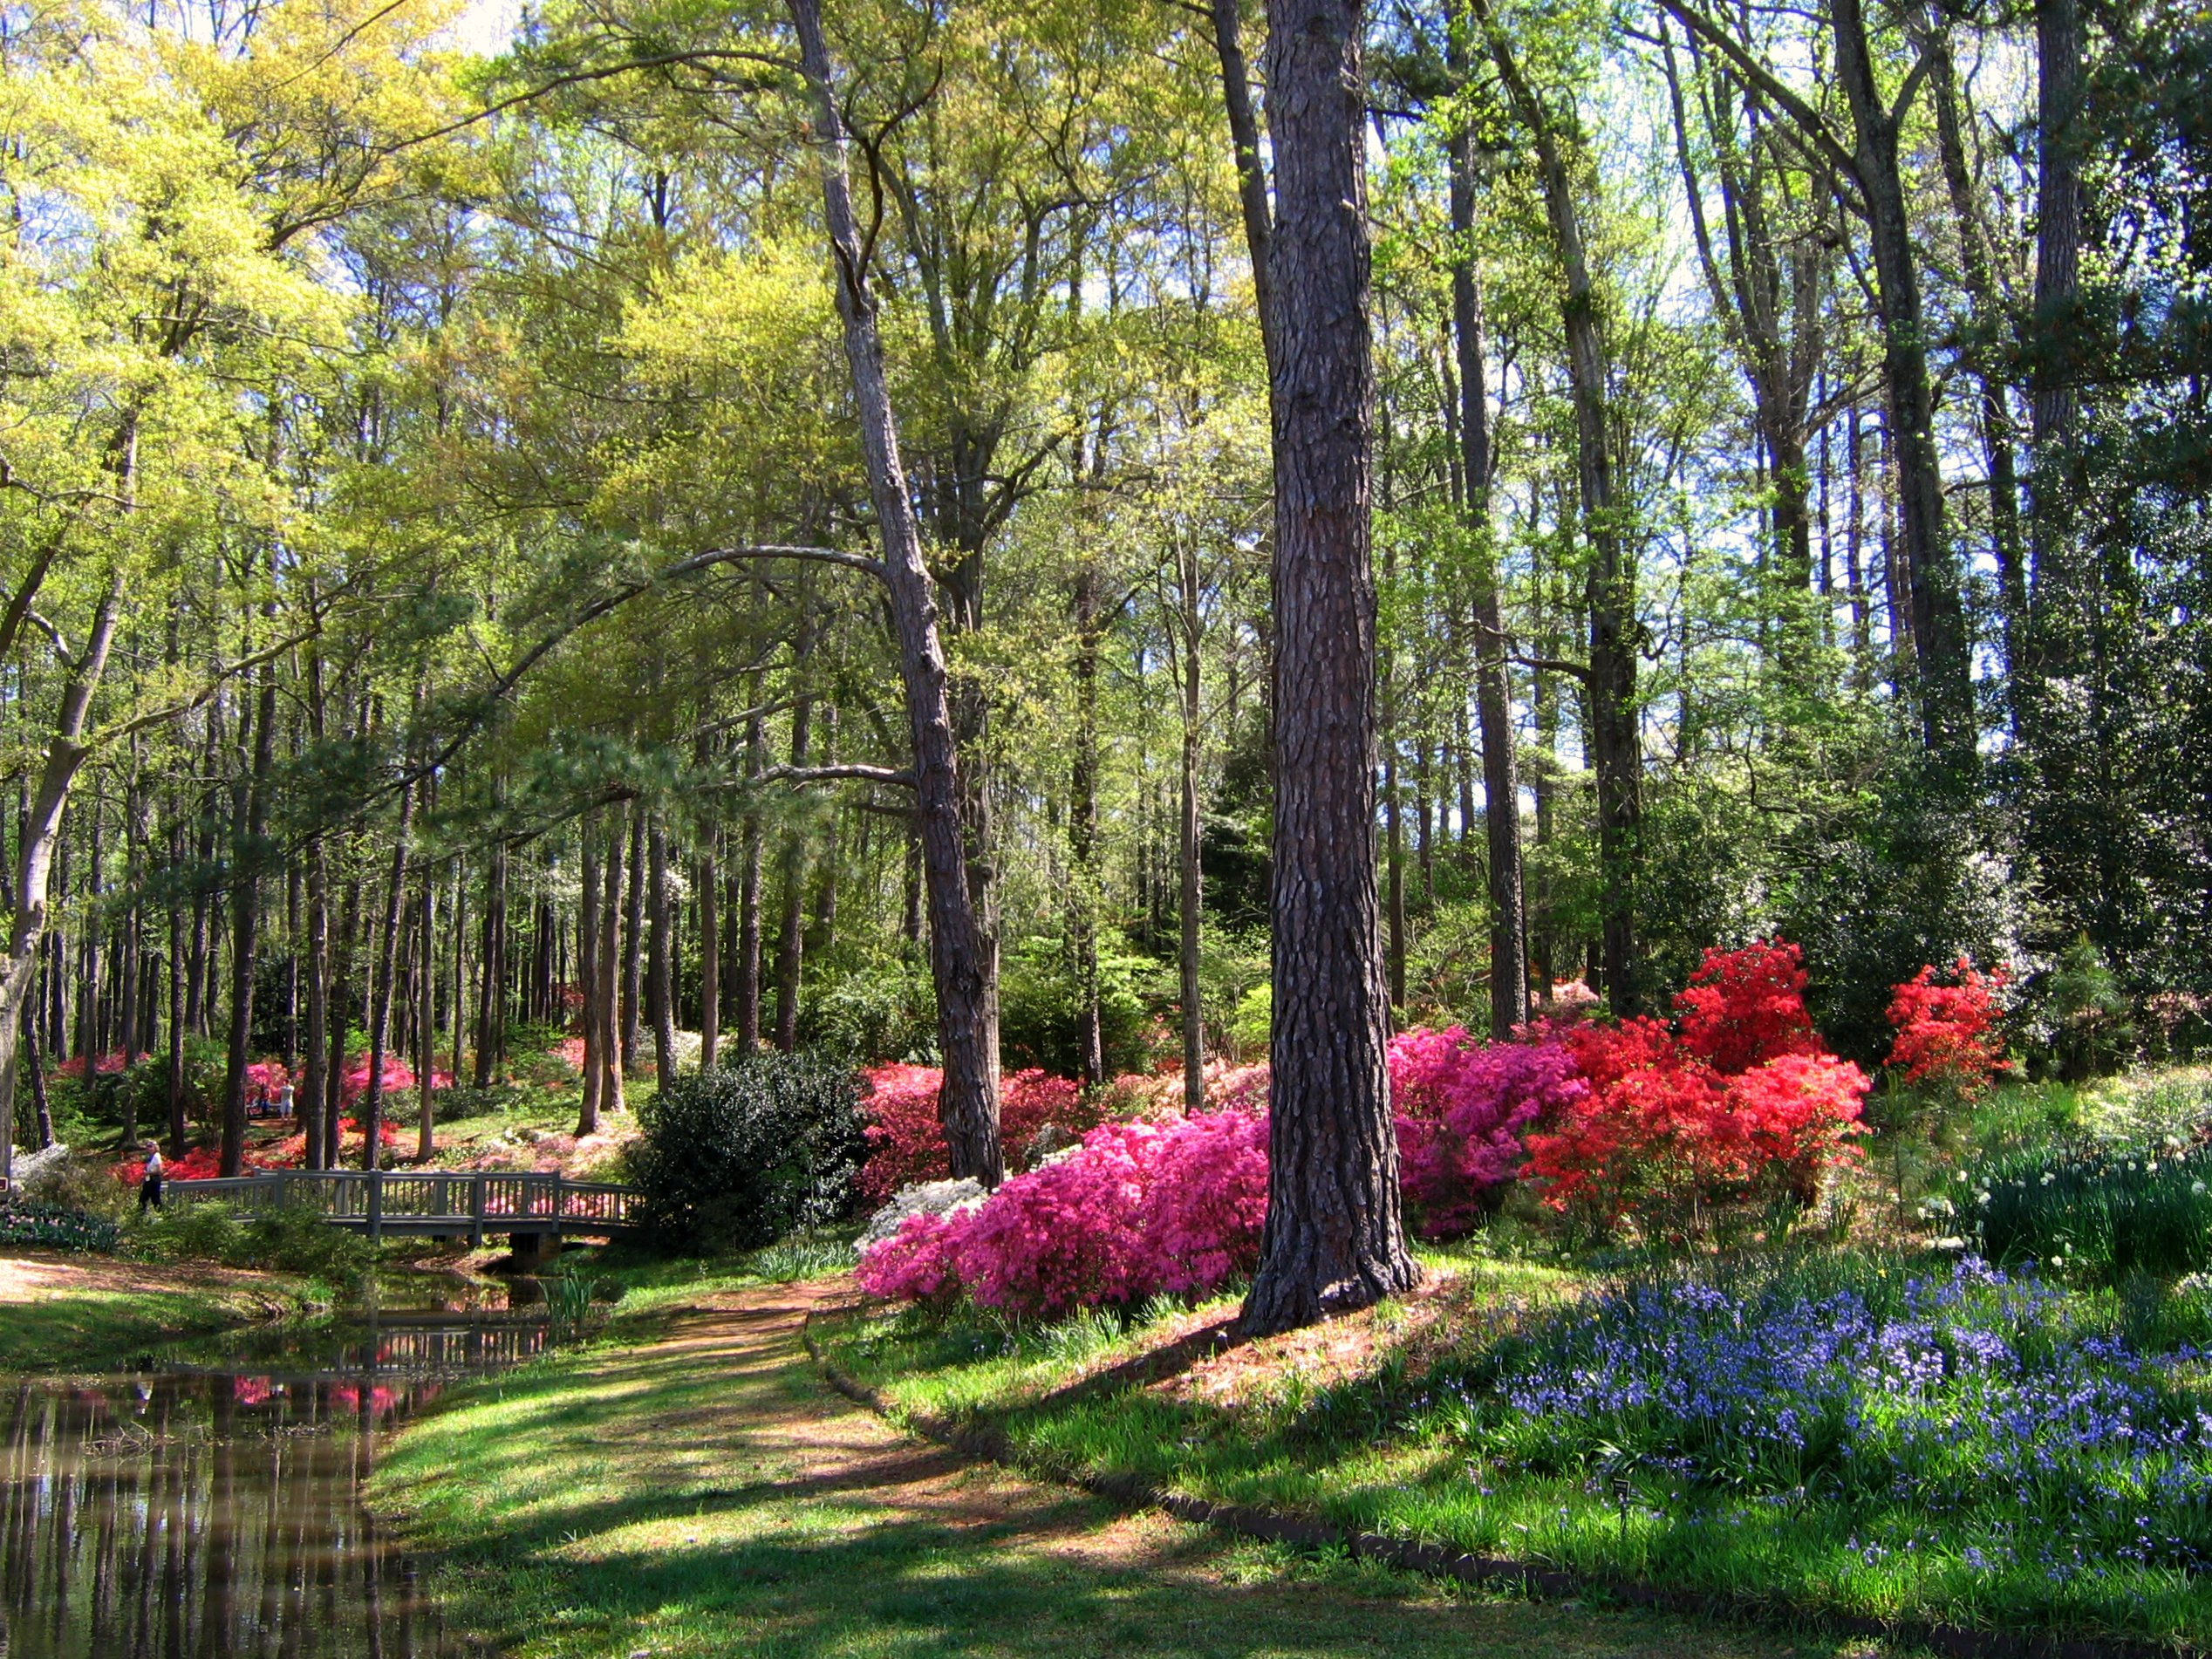 00-20161109_early-april-in-georgia-s-callaway-gardens.jpg